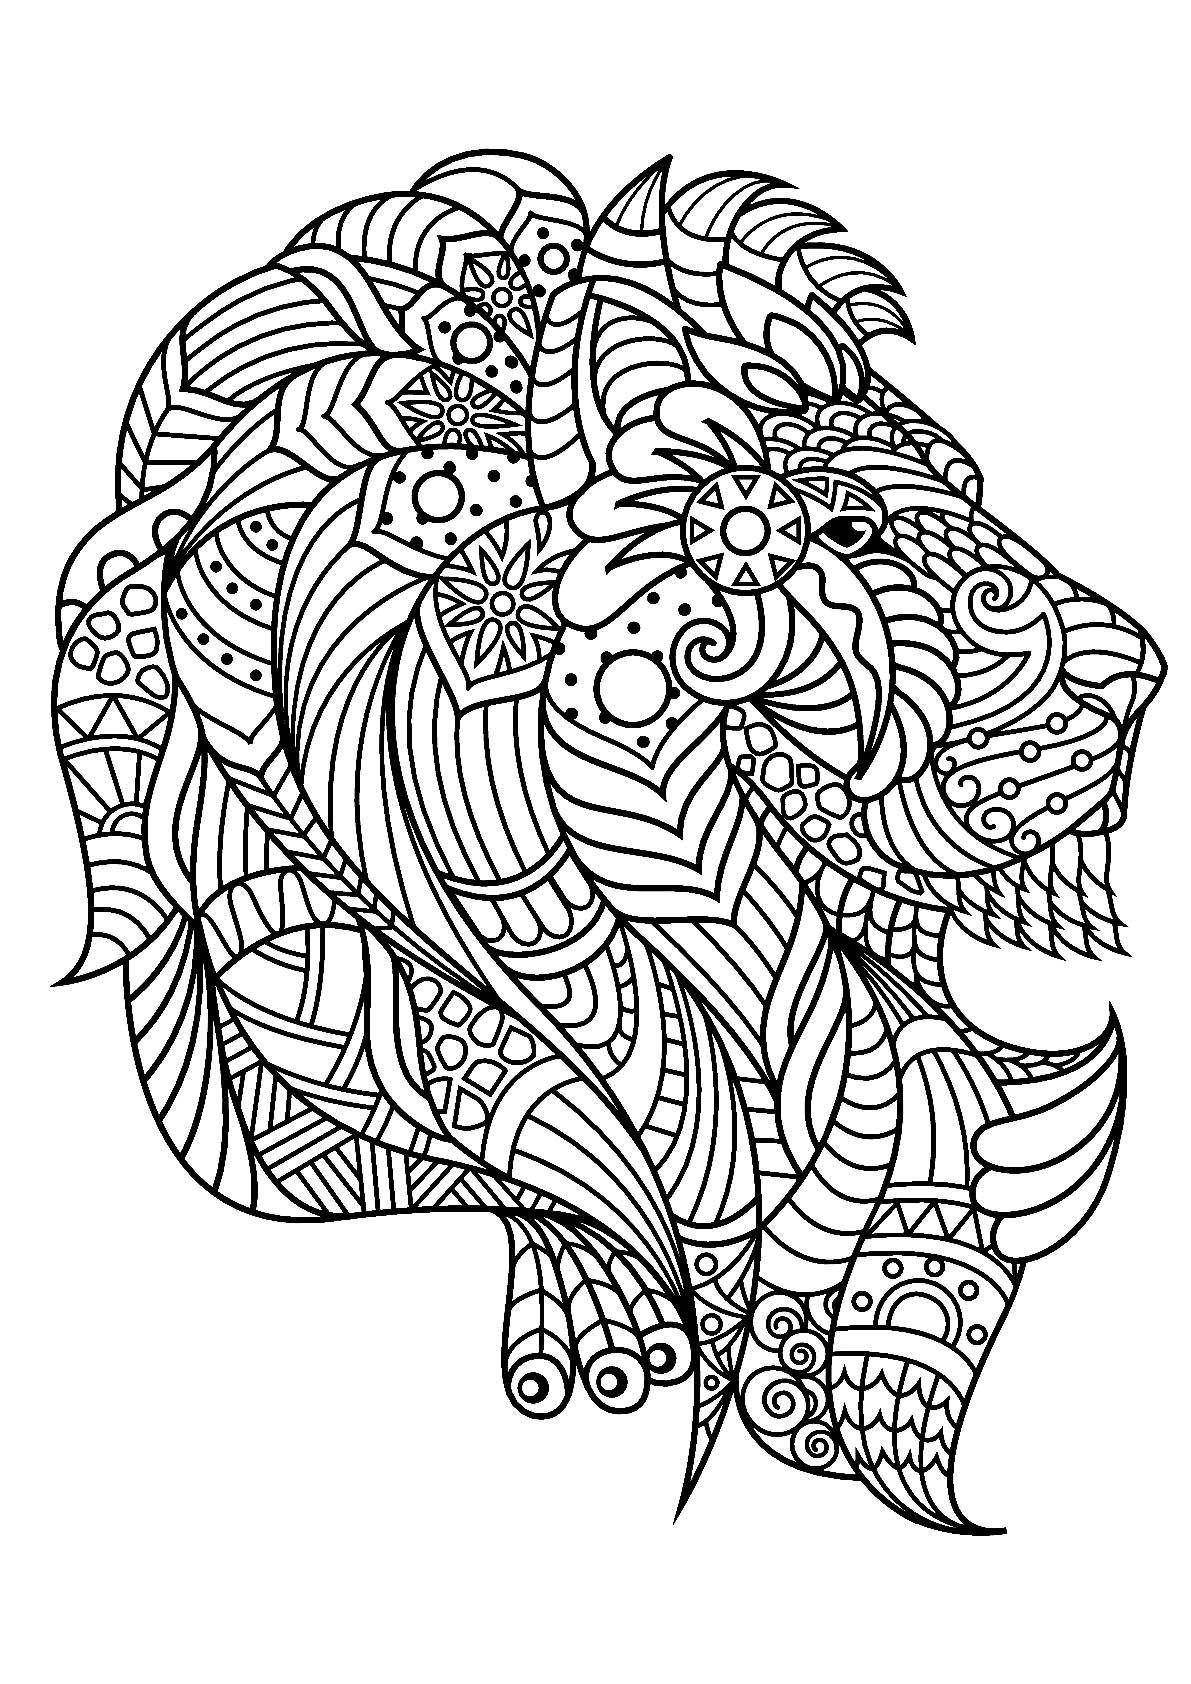 picture of lion coloring page fantasy lion printable adult coloring page from favoreads lion picture coloring page of